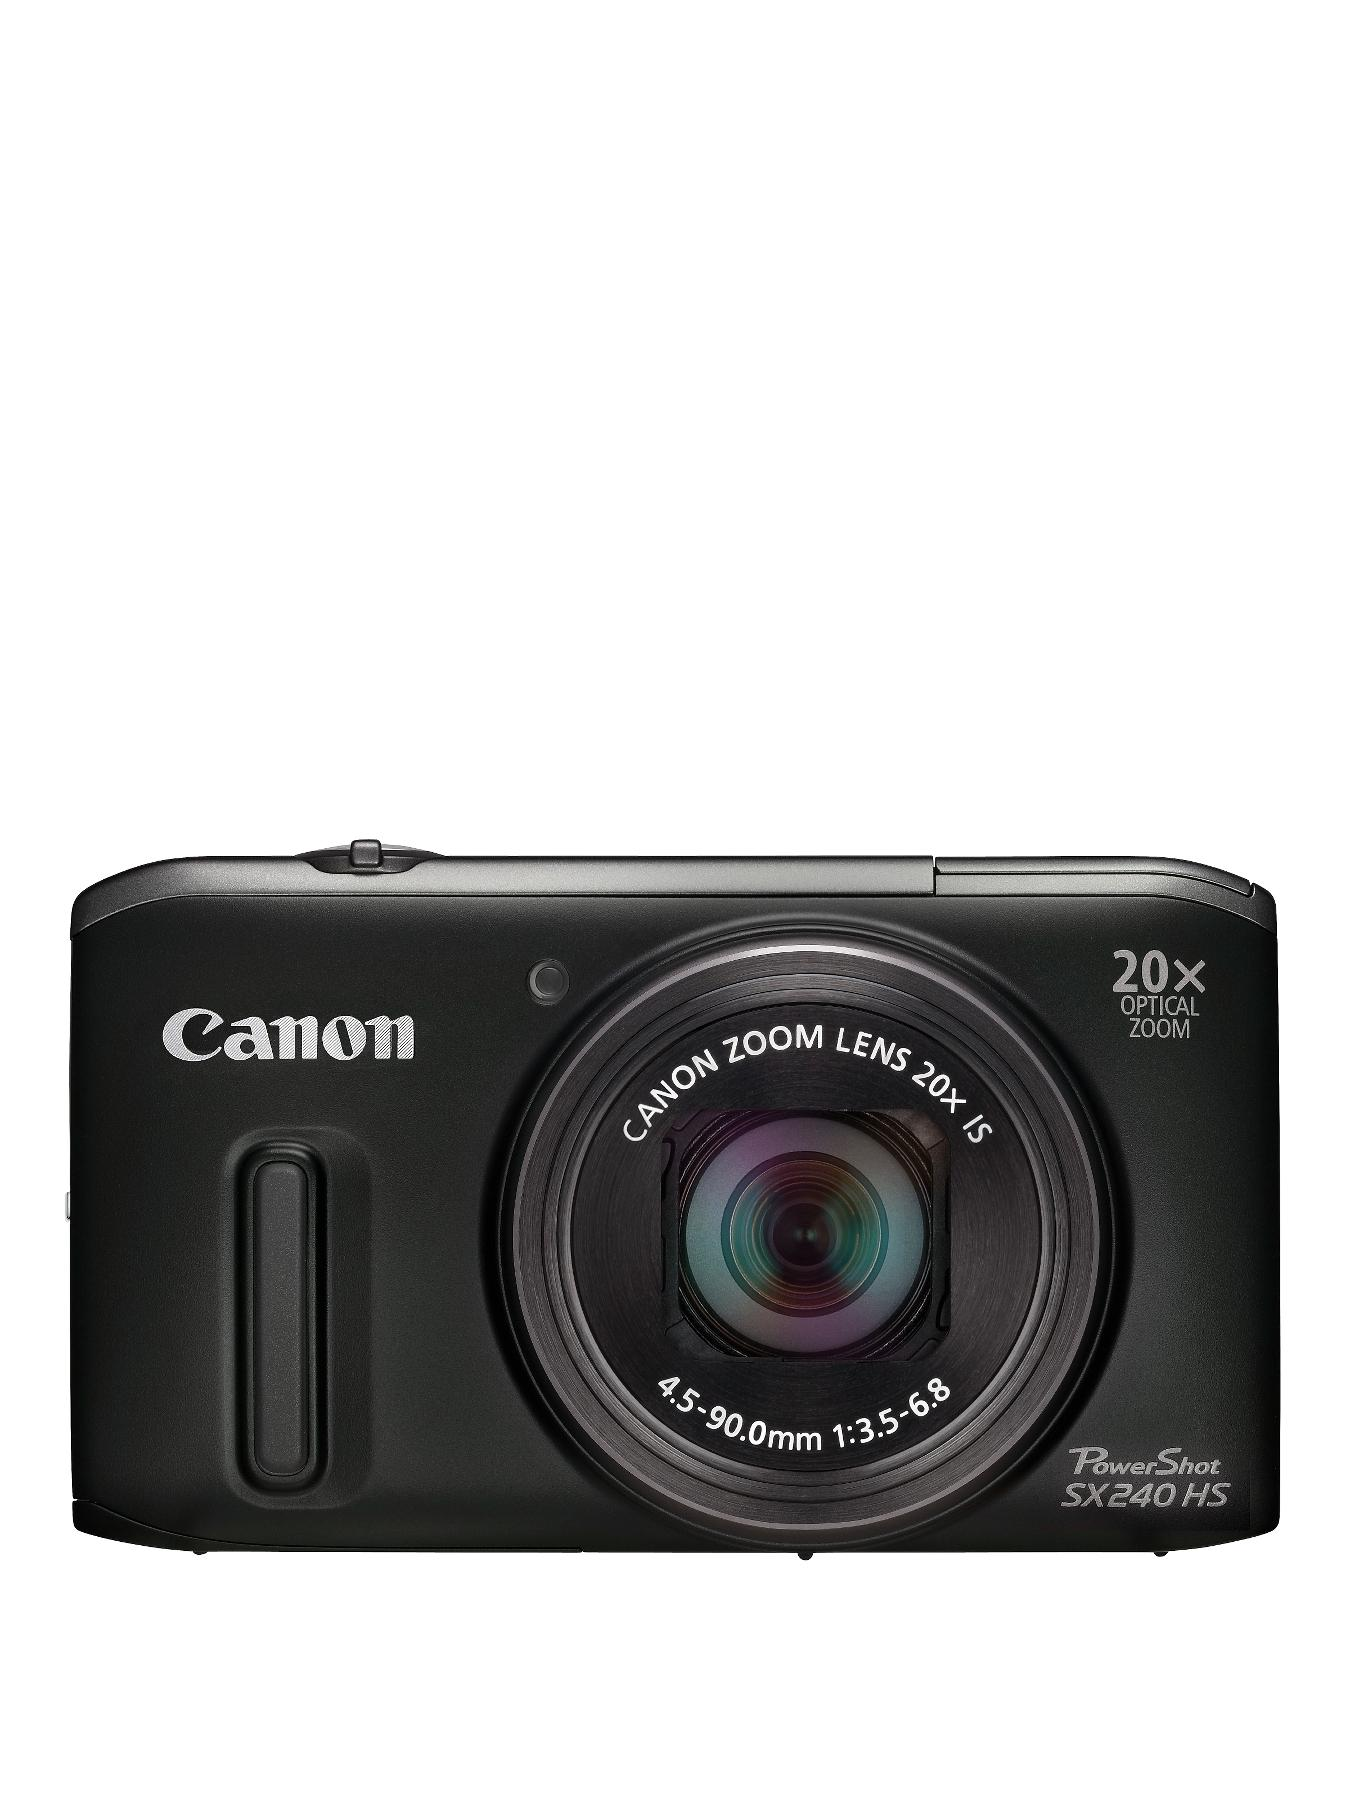 Canon Powershot SX240 HS Digital Camera